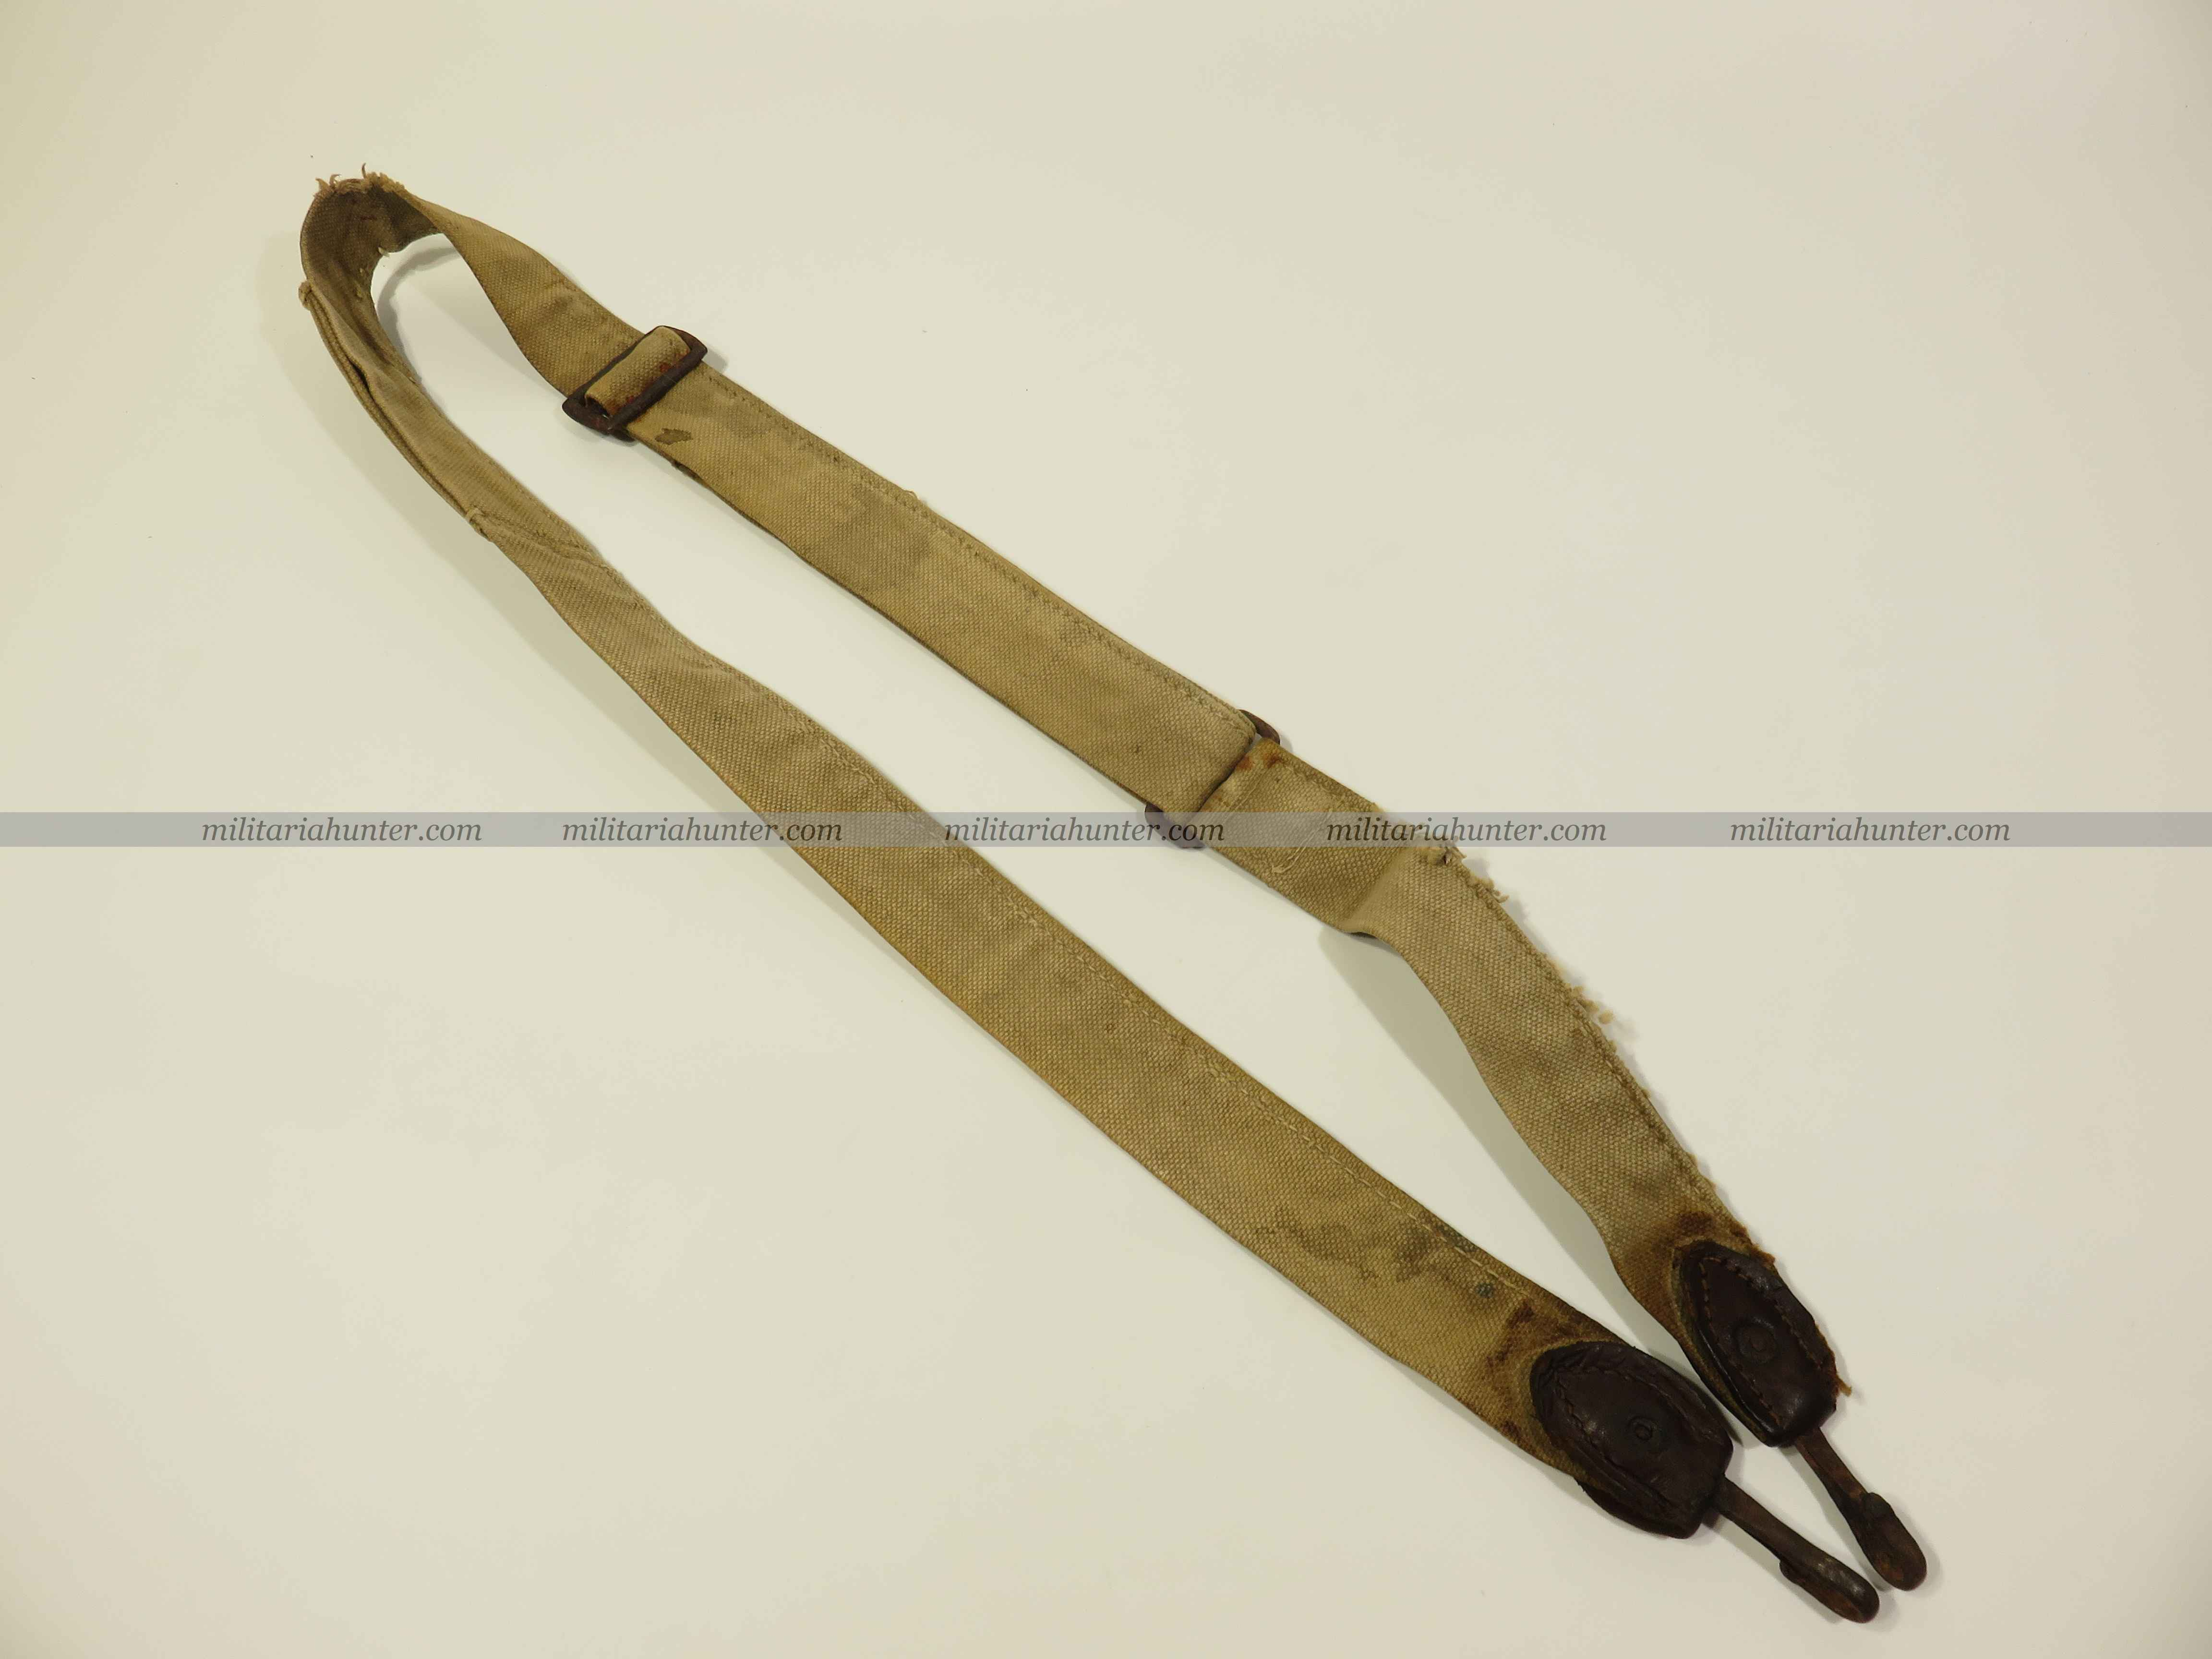 militaria : WW1 german bread bag strap - Sangle de sac à Pain - Brotbeutel Riemen ON HOLD